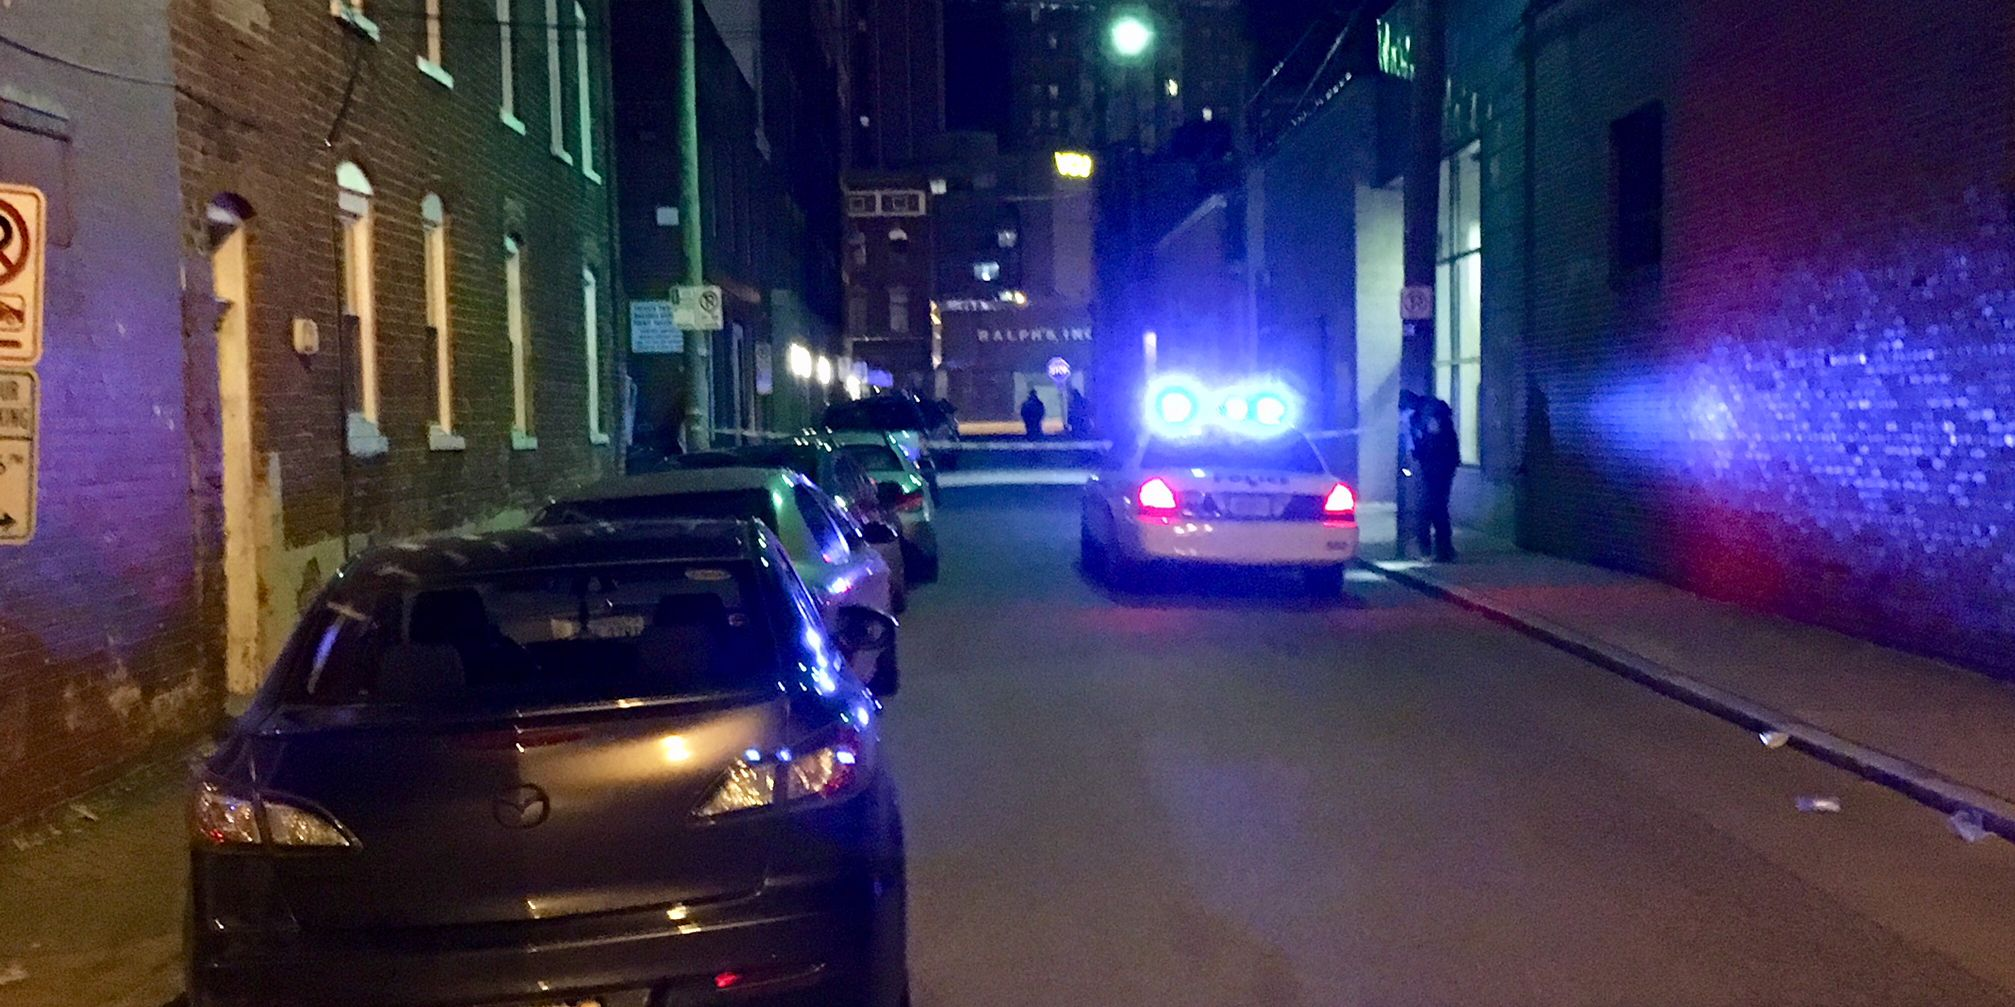 VCU issues crime alert for shooting near campus early Monday